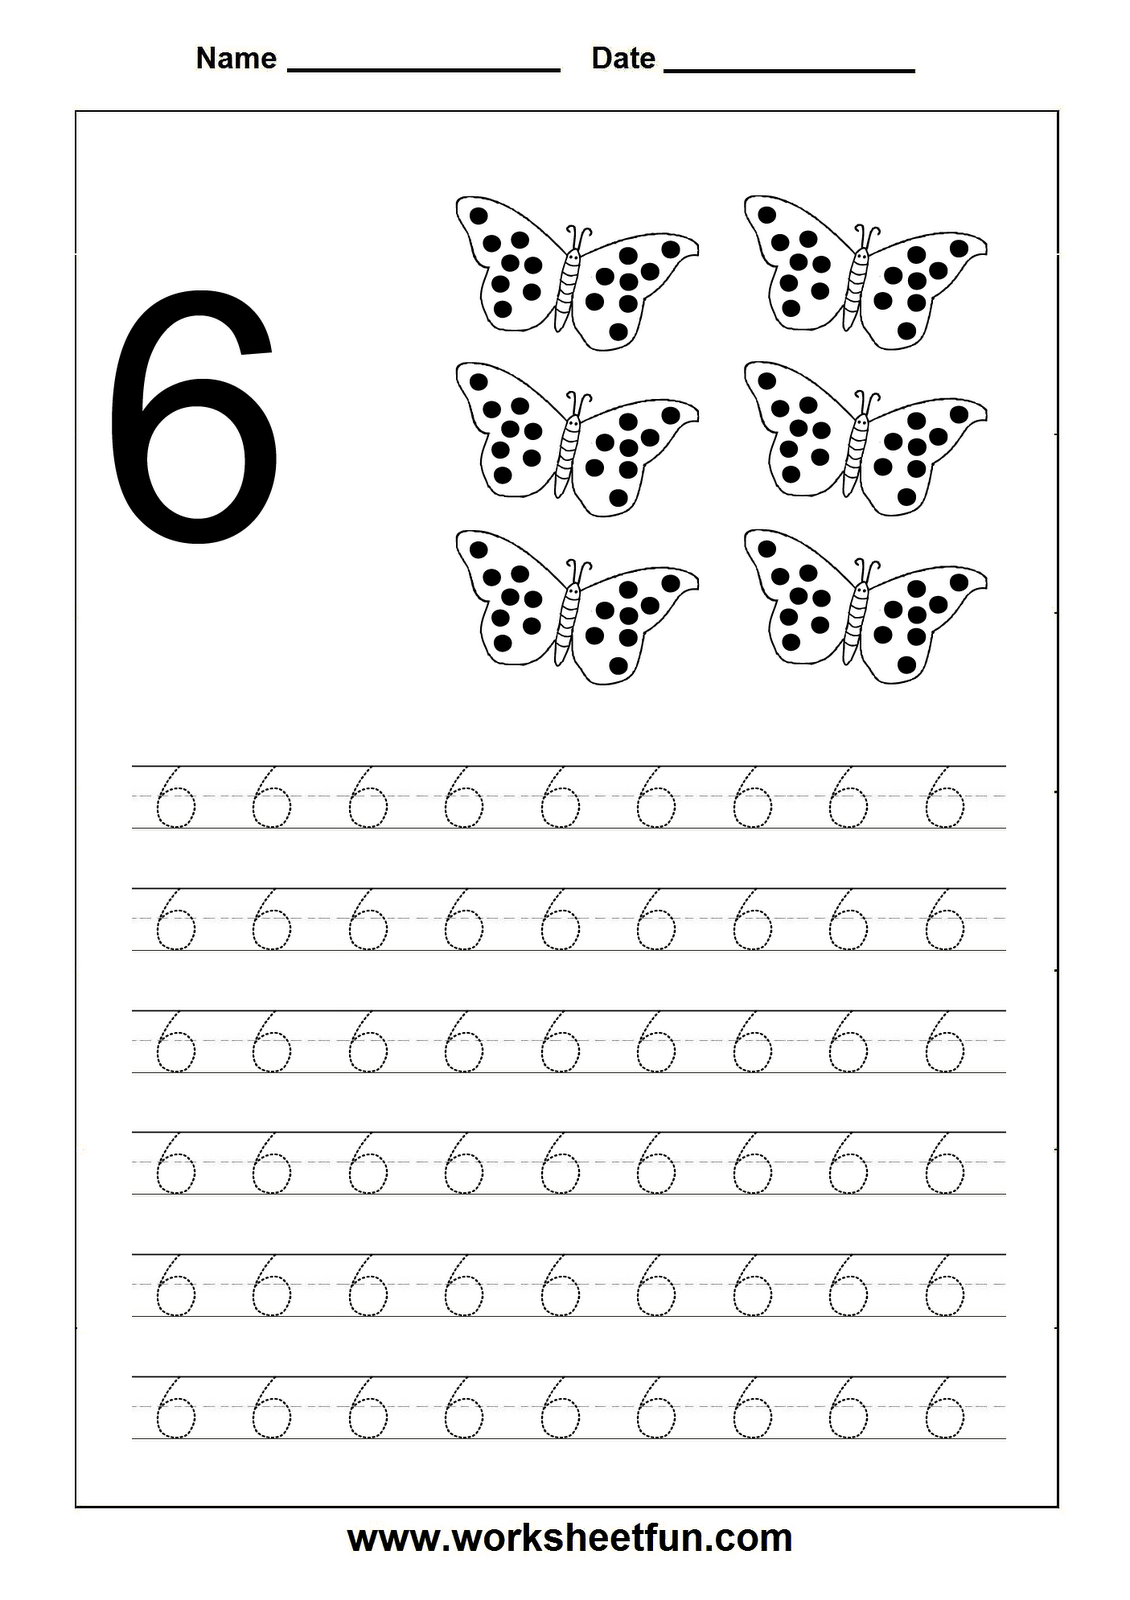 worksheet Number Handwriting Worksheets number tracing worksheet 6 pinterest 6